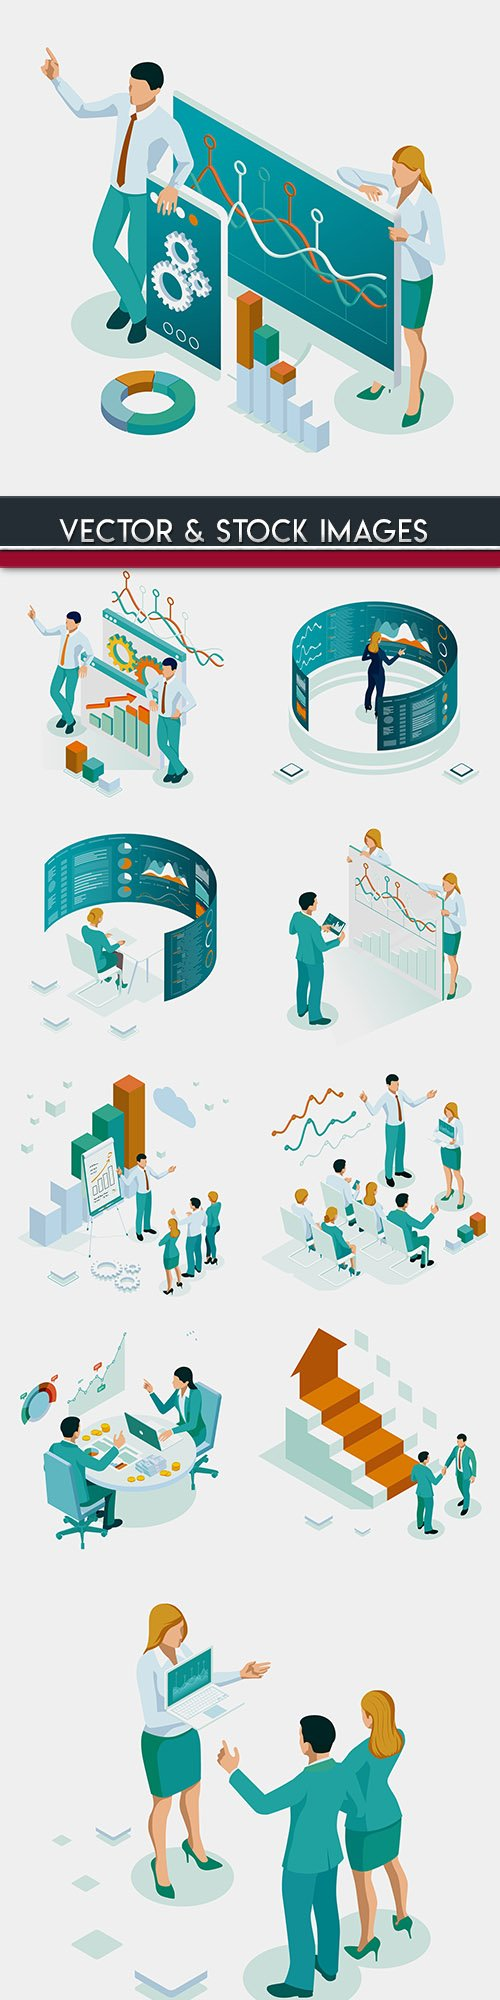 Isometrics business technology and people design